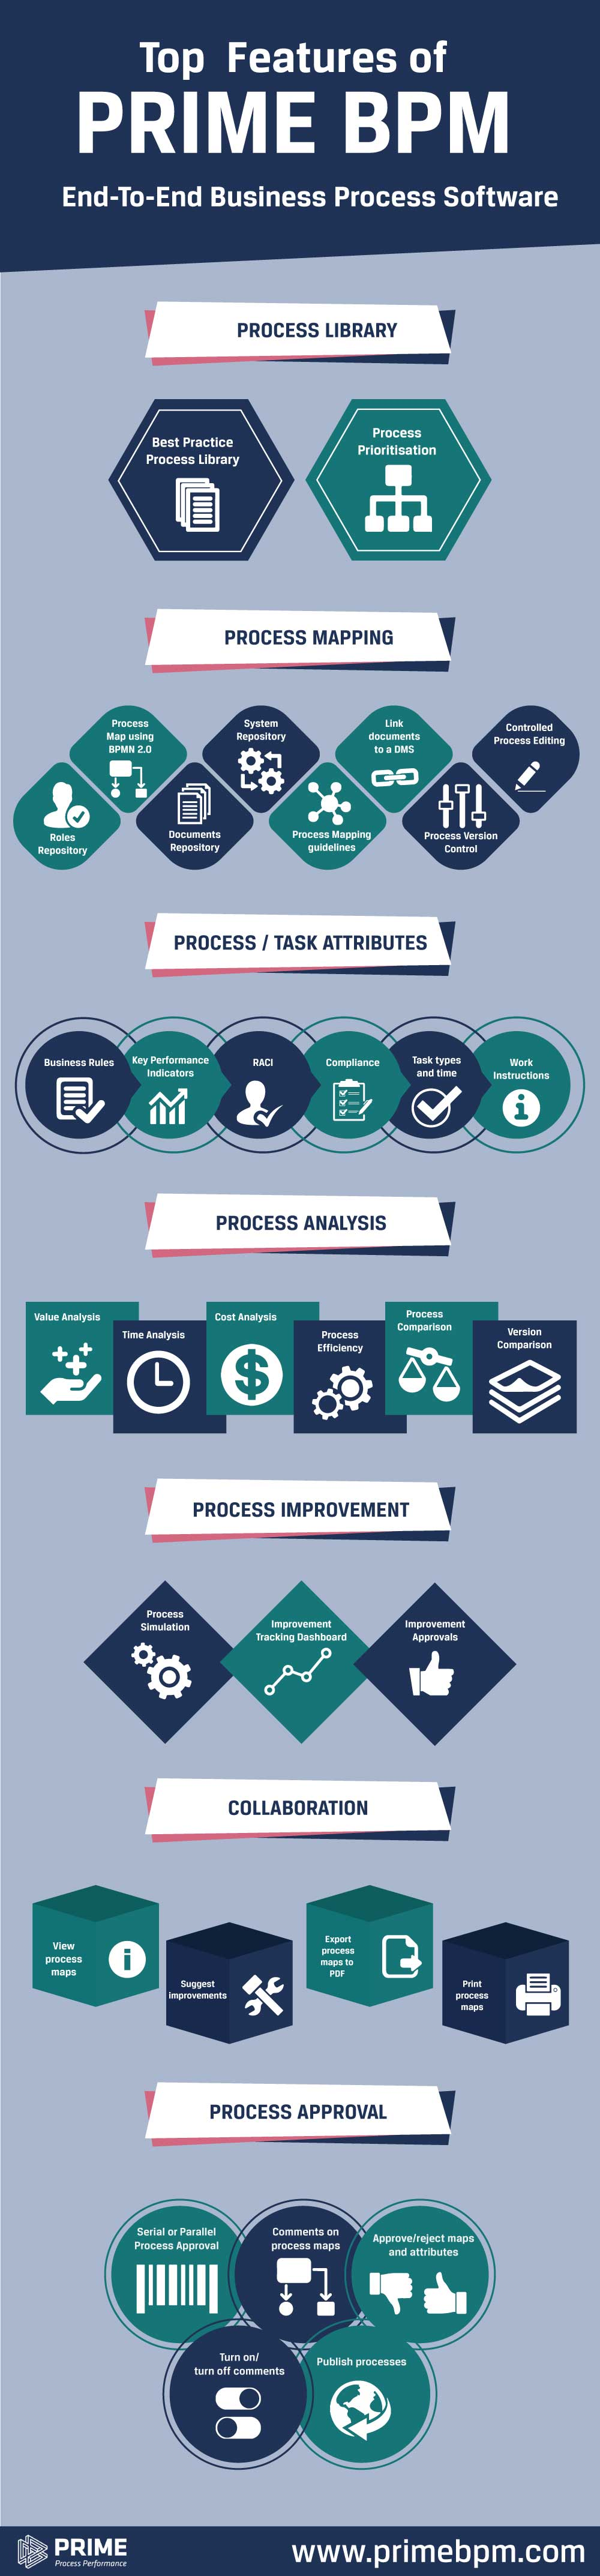 Top 10 Features of PRIME BPM